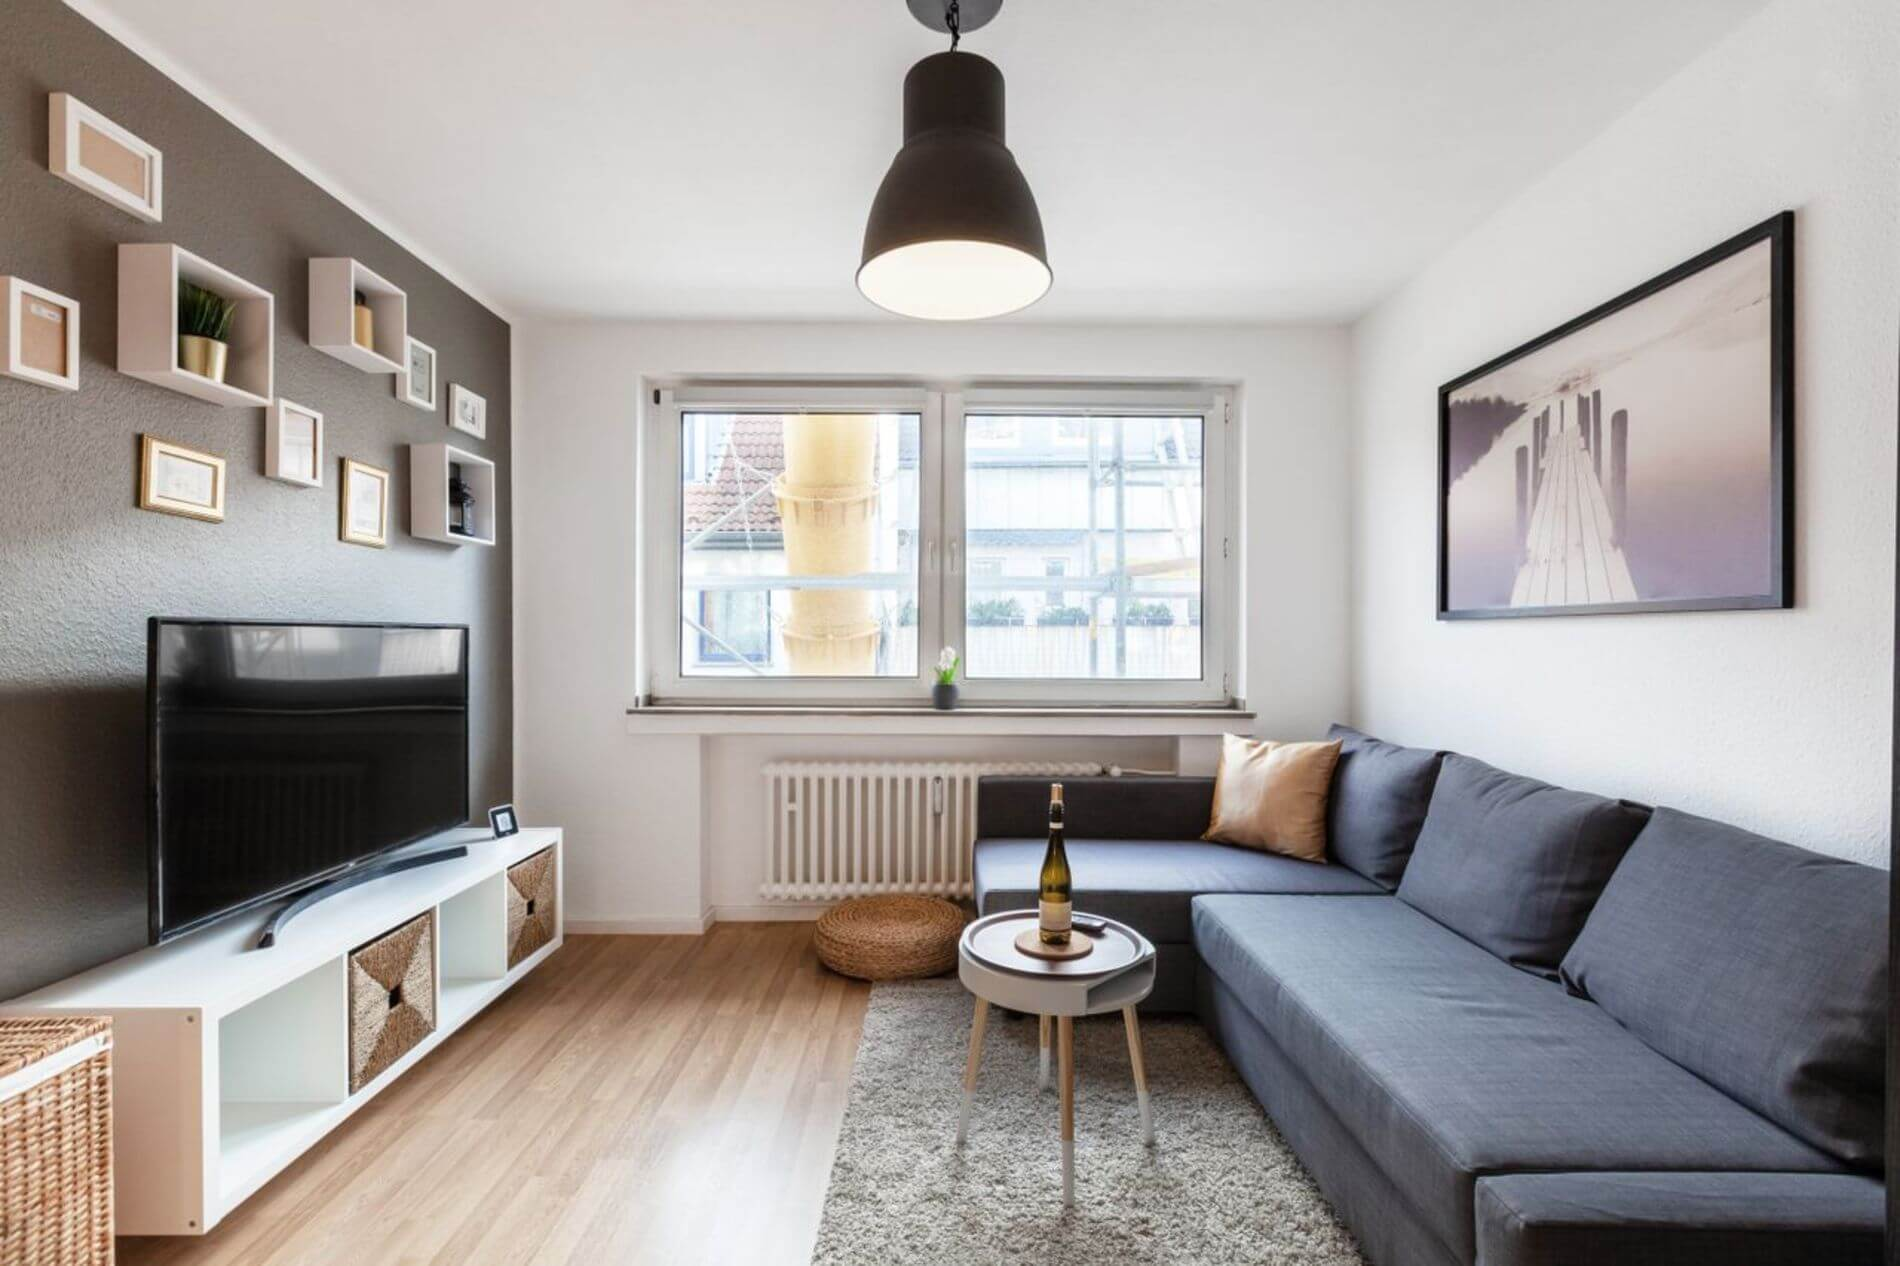 Fully furnished modern 2 bedroom apartment in old town Cologne